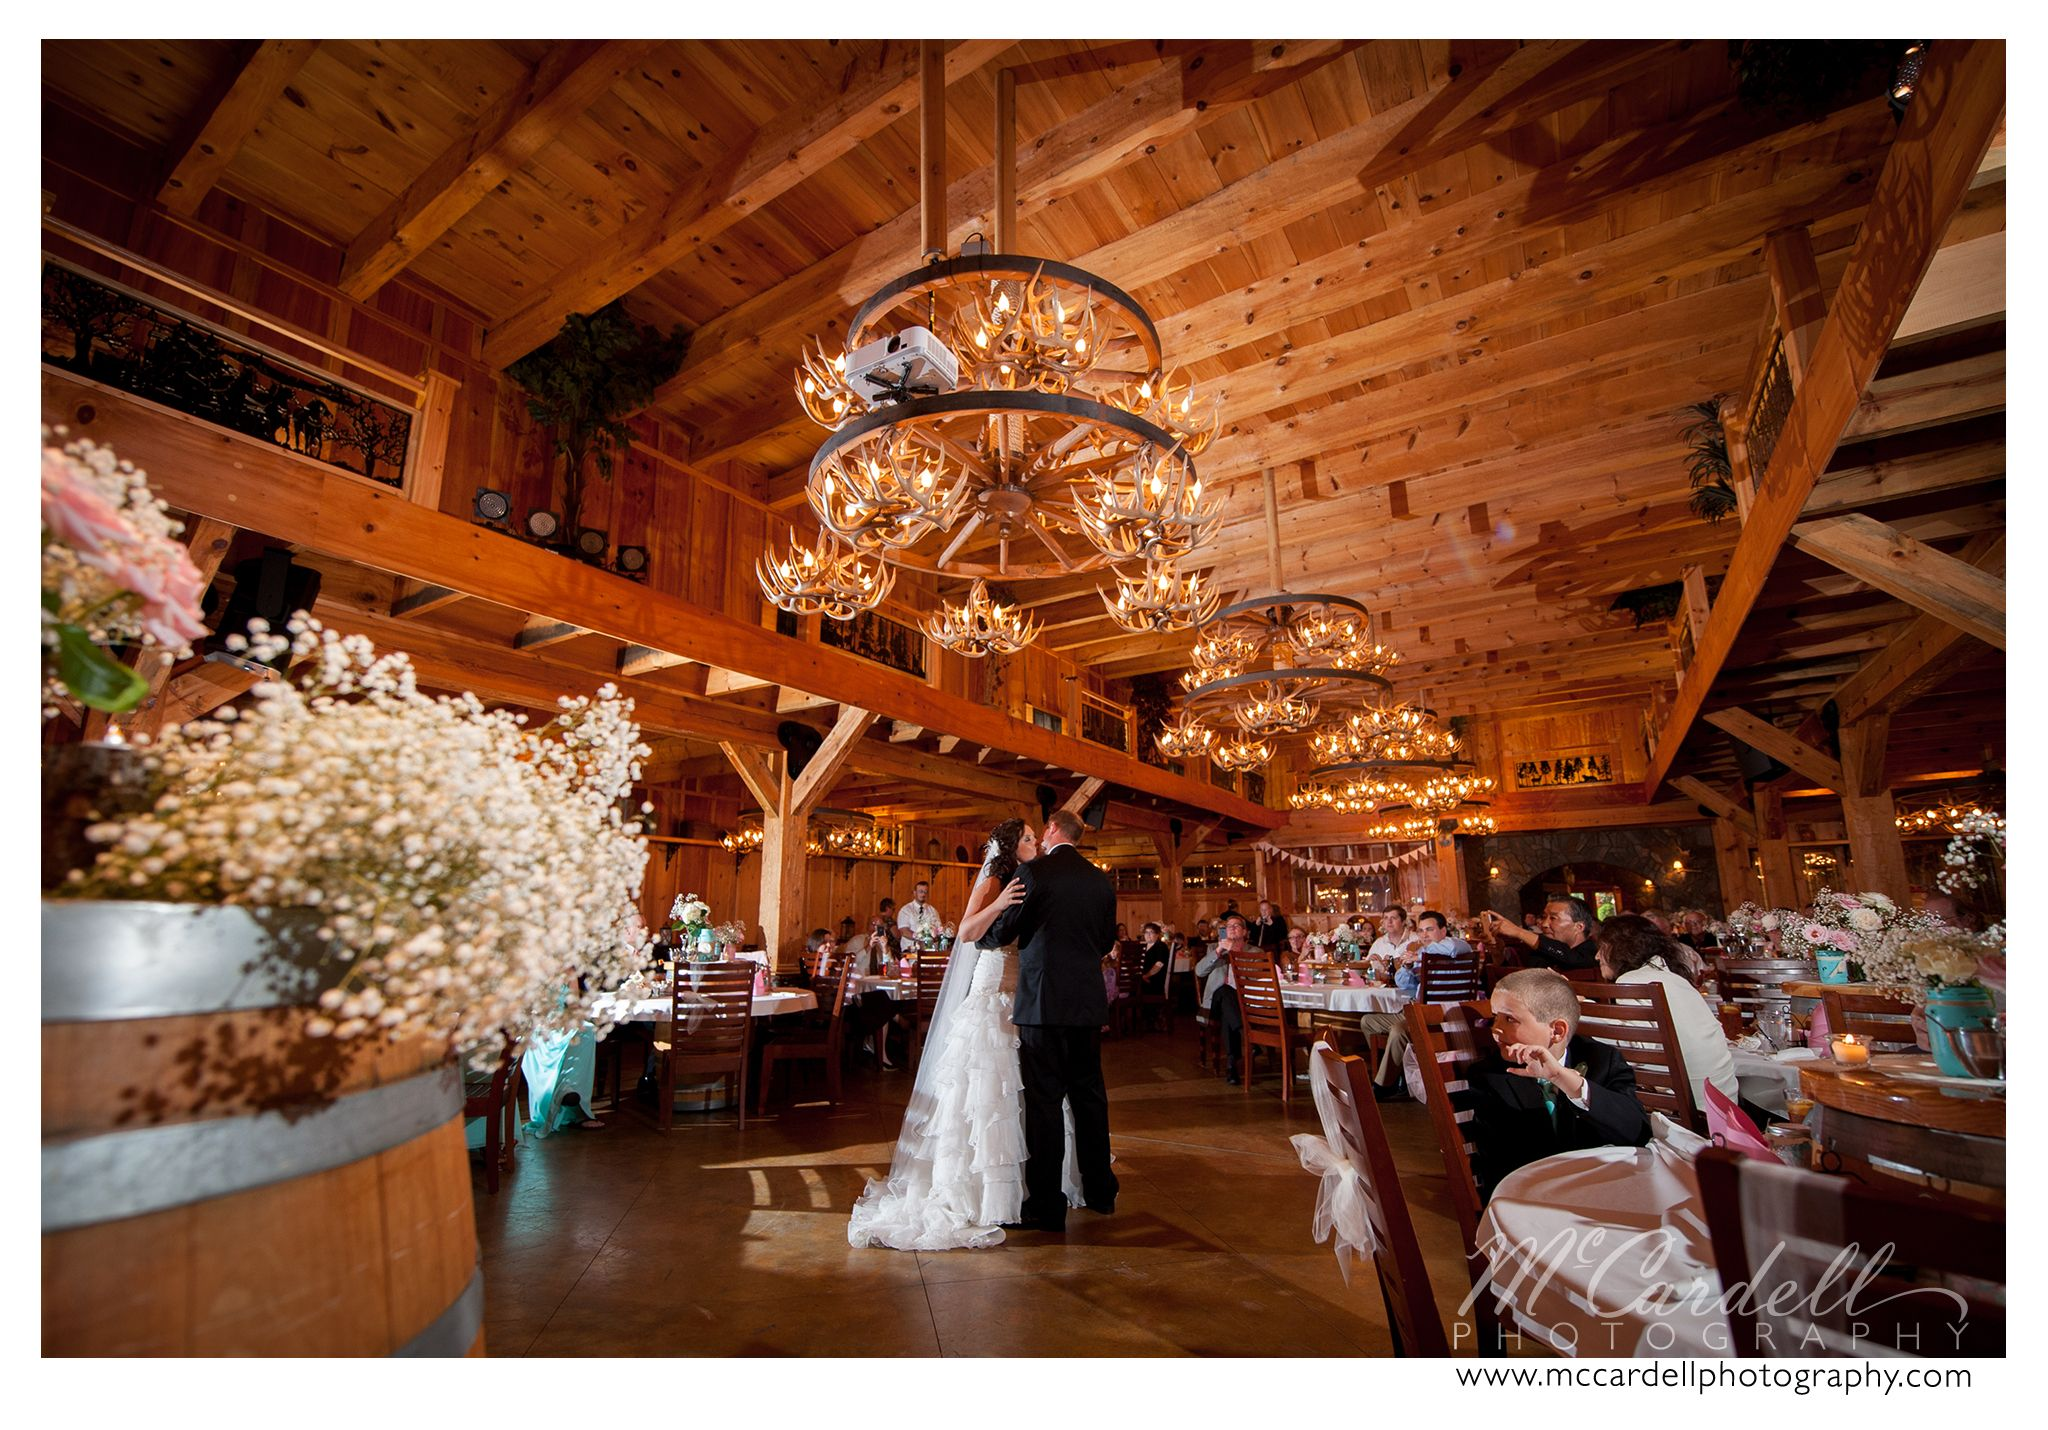 A Cody Creek wedding in Dobson, NC by McCardell Photography ...